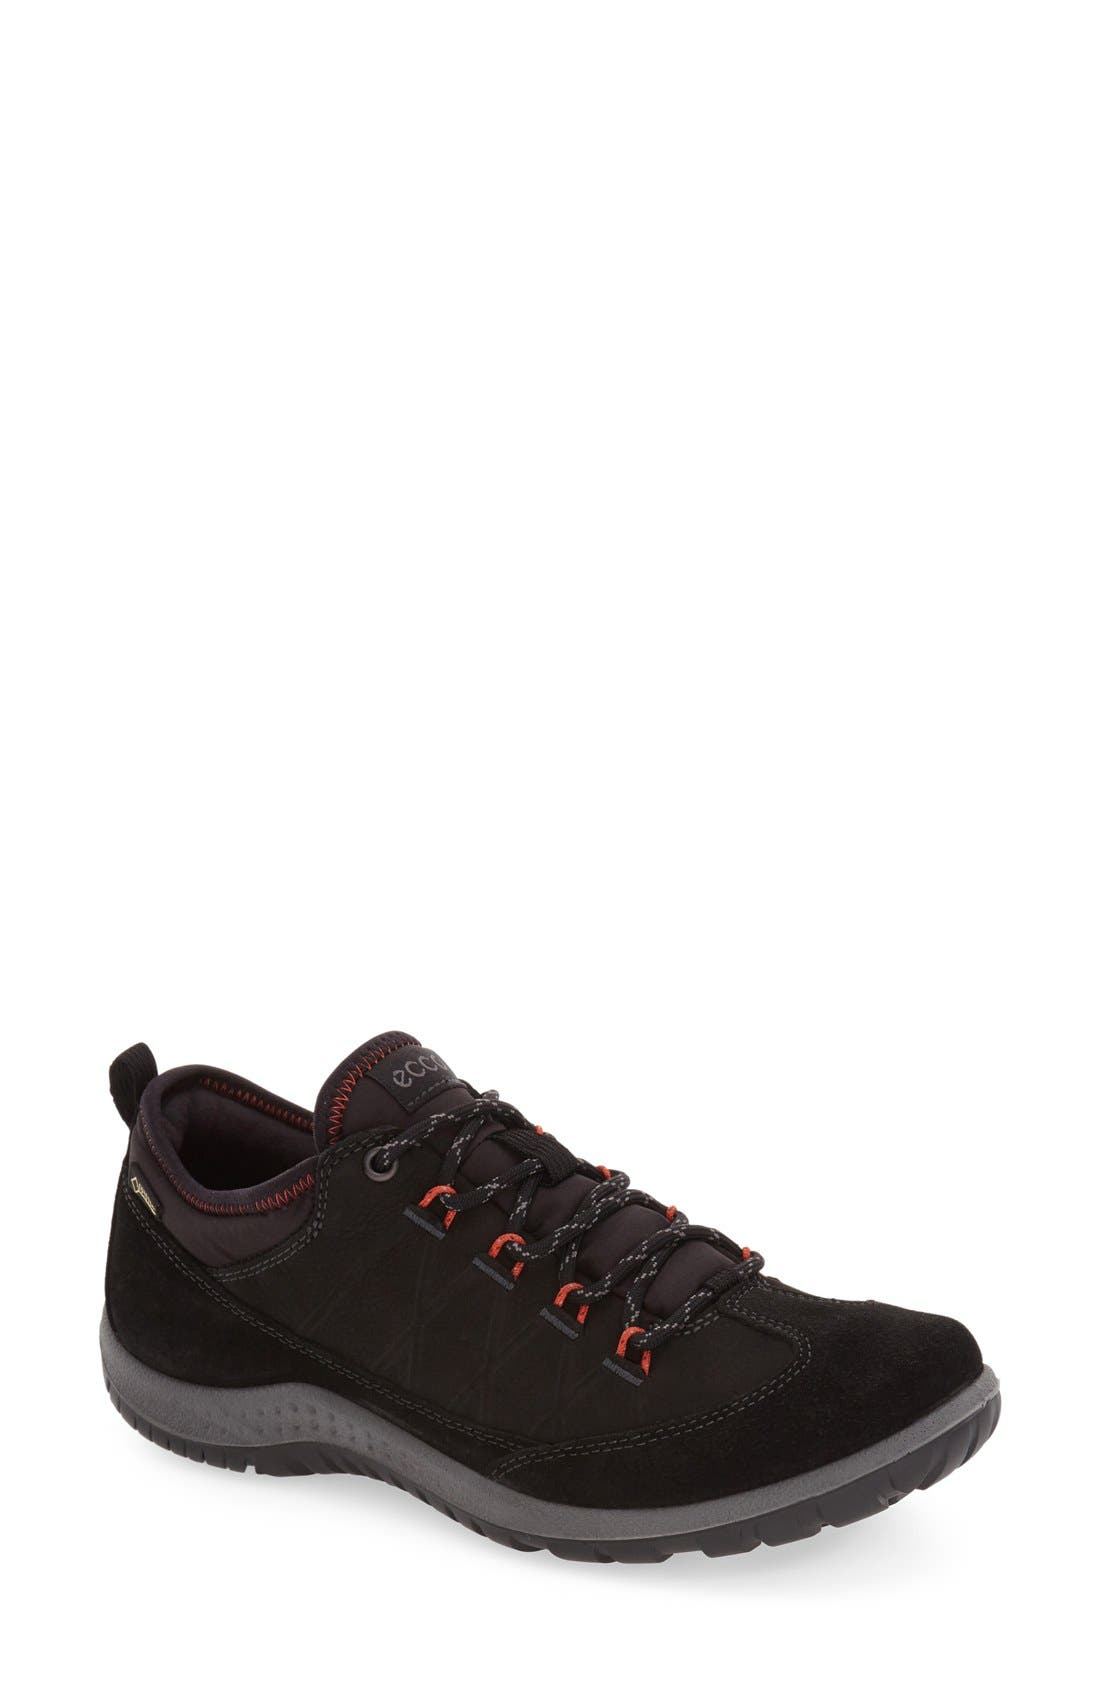 'Aspina GTX' Waterproof Sneaker,                         Main,                         color, Black Oiled Suede